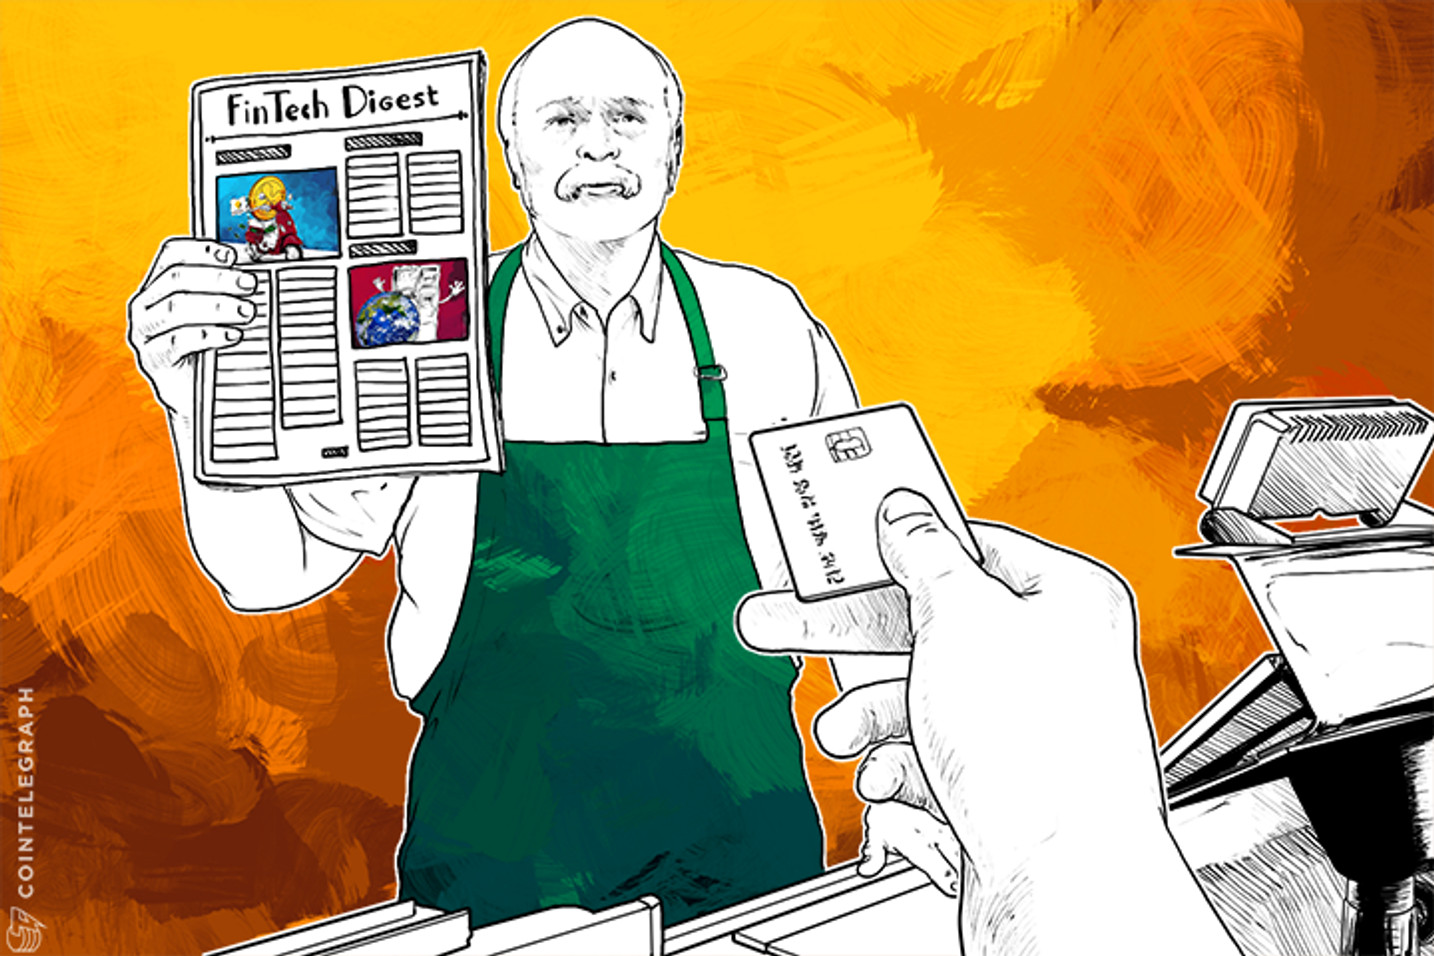 FinTech Digest: Android Pay Arrives, CBA Integrates Ripple, Bitcoin ATMs Hit Milestone